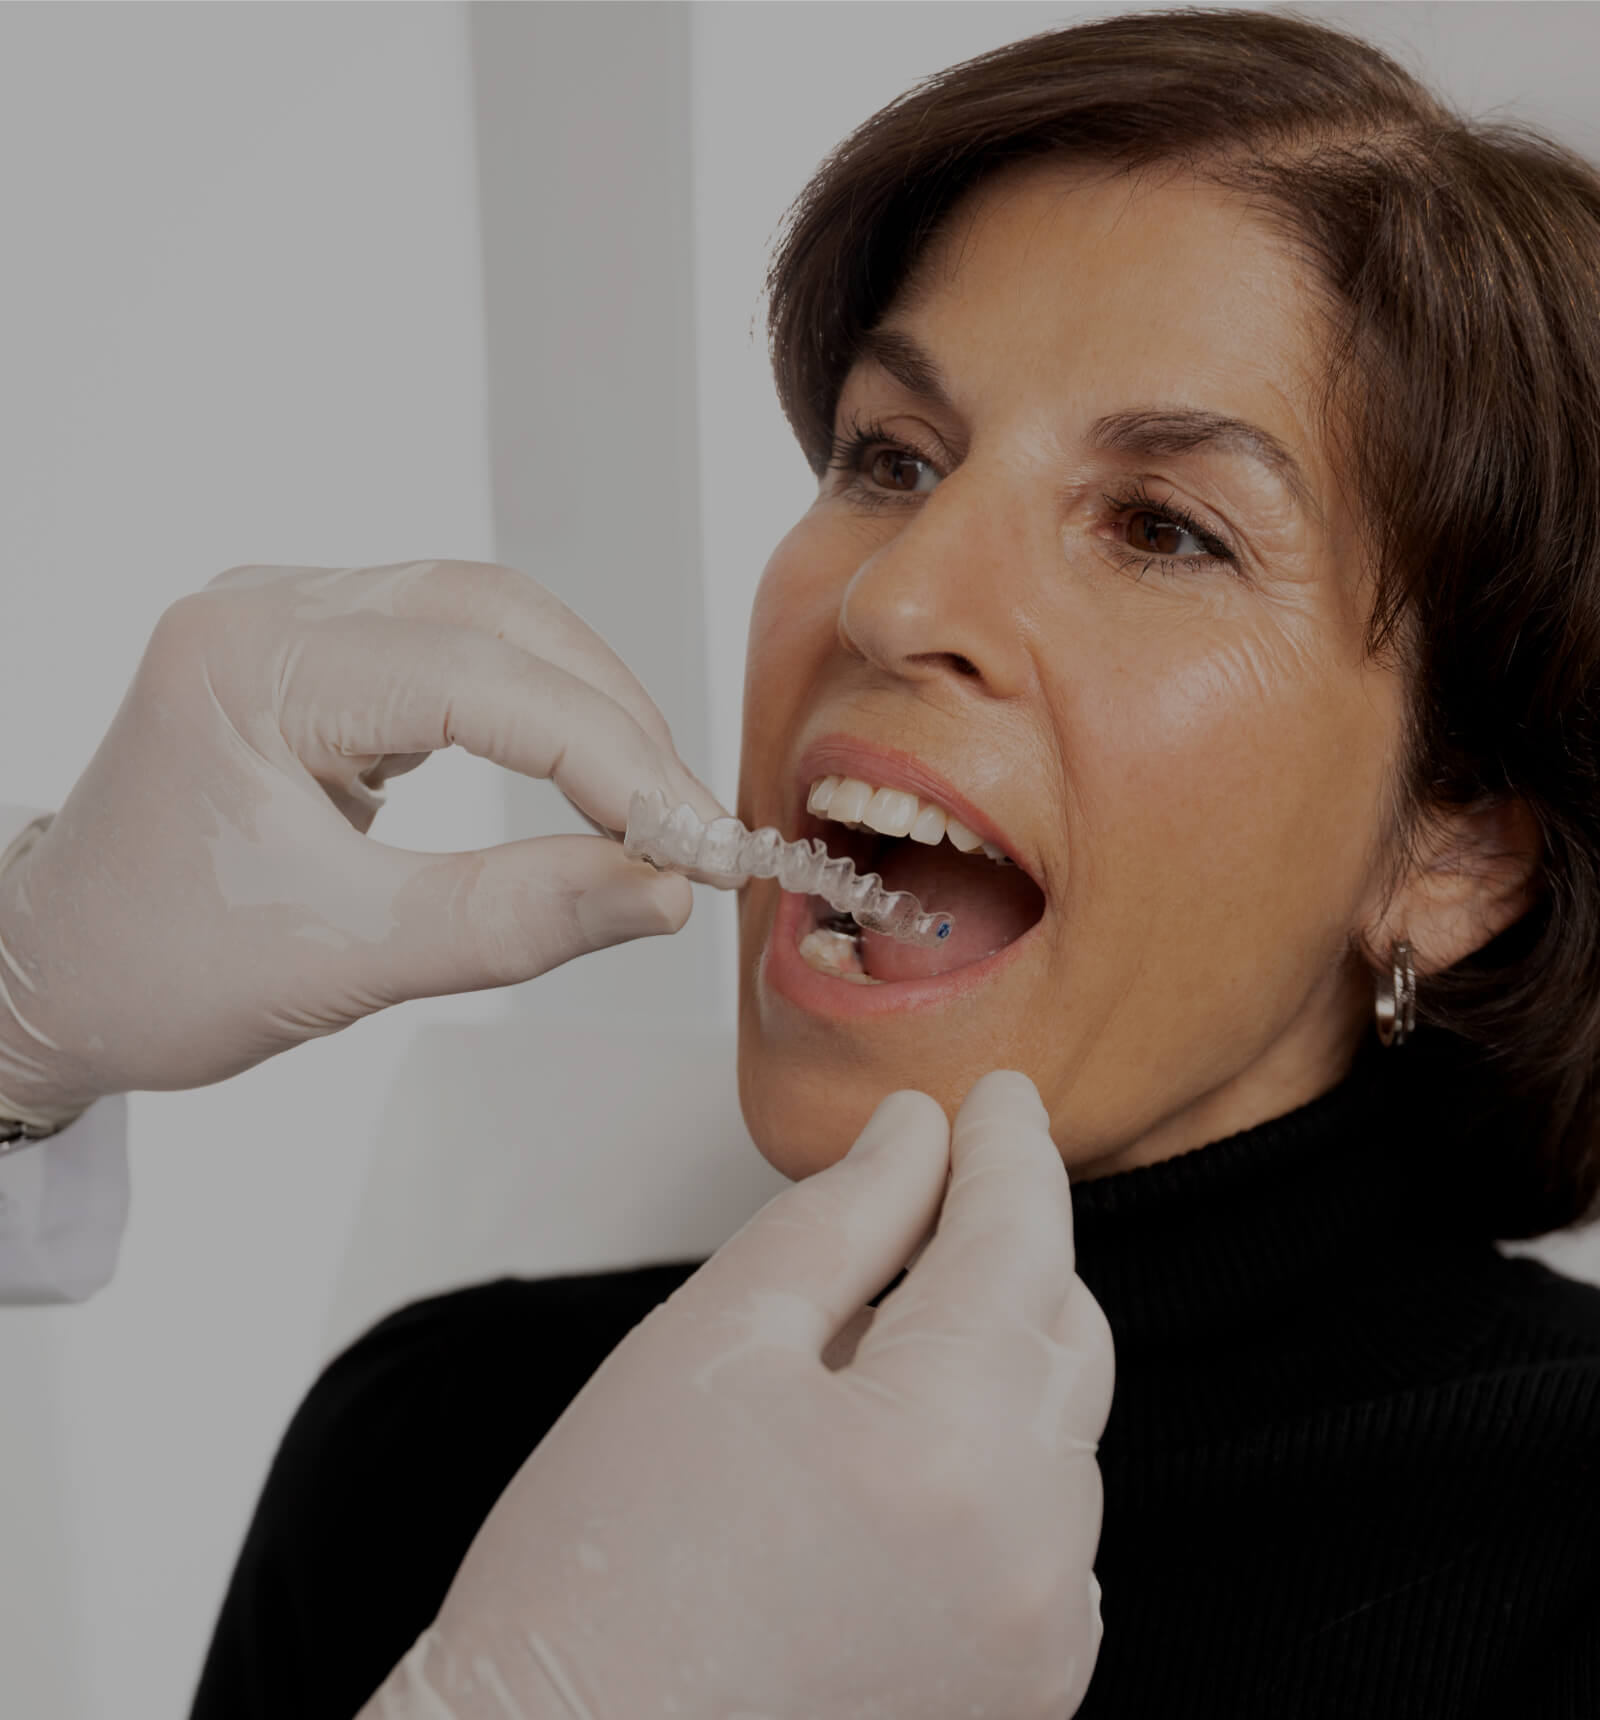 The dentist at Clinique Chloé installing the dental gutters filled with teeth whitening product in a female patient's mouth